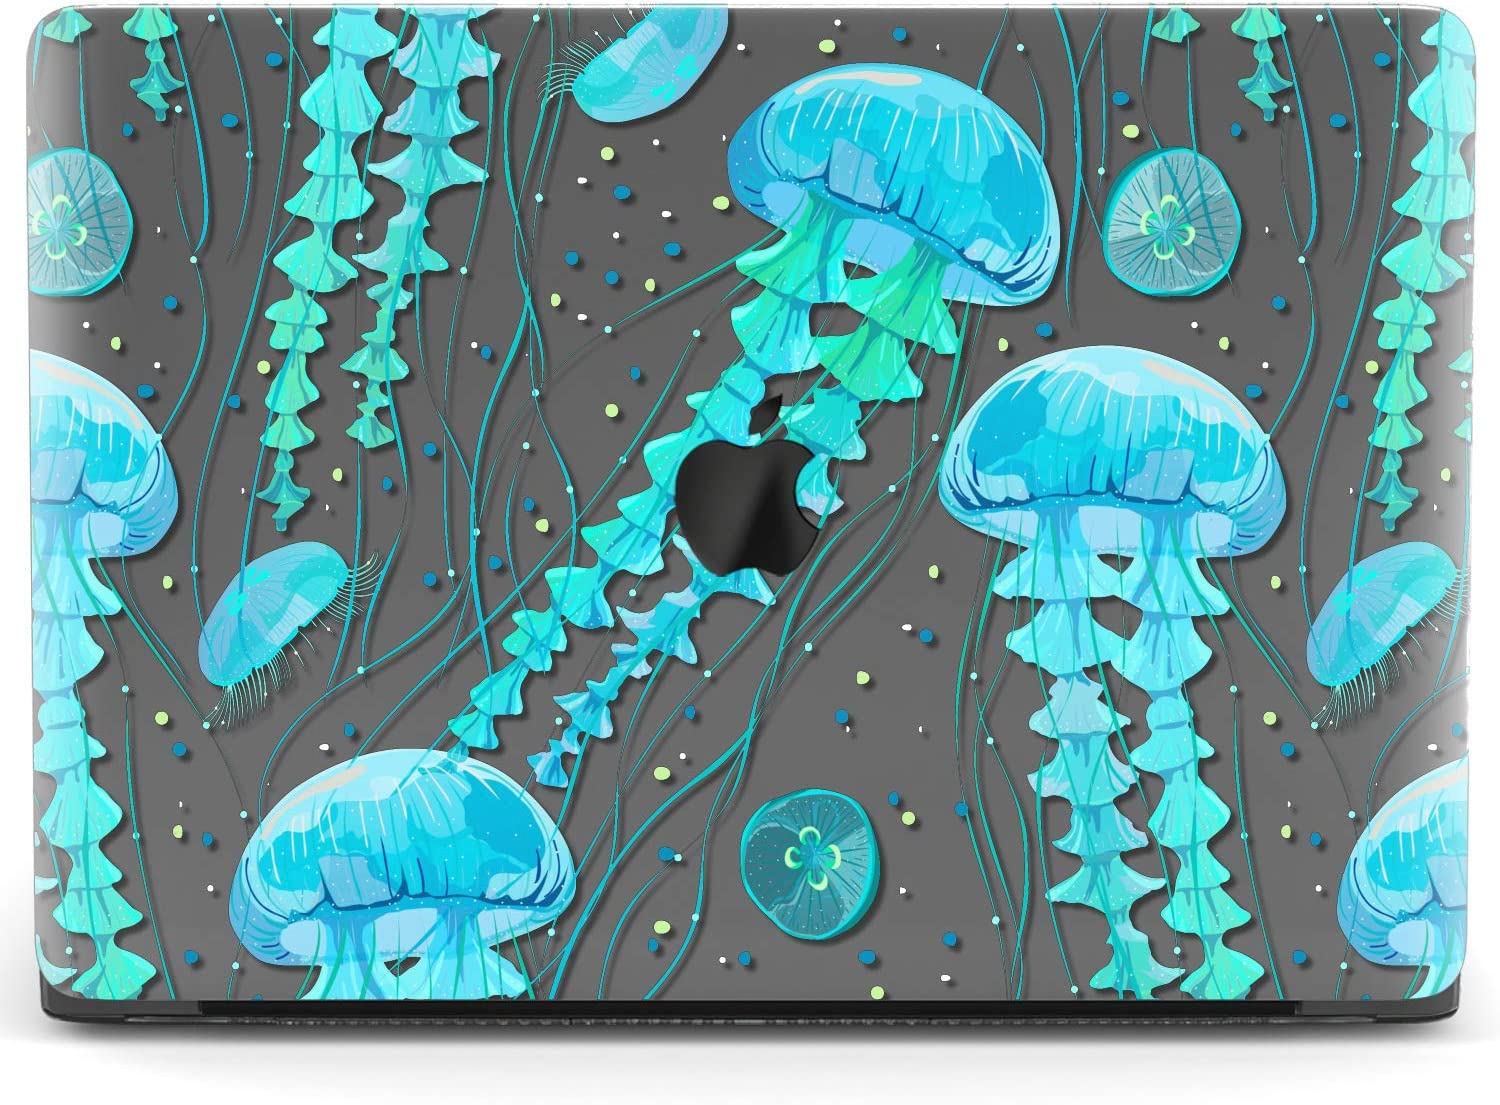 Mertak Hard Case for Apple MacBook Pro 16 Air 13 inch Mac 15 Retina 12 11 2020 2019 2018 2017 Print Ocean Underwater Protective Clear Cover Tentacles Laptop Plastic Animal Shell Jellyfish Teal